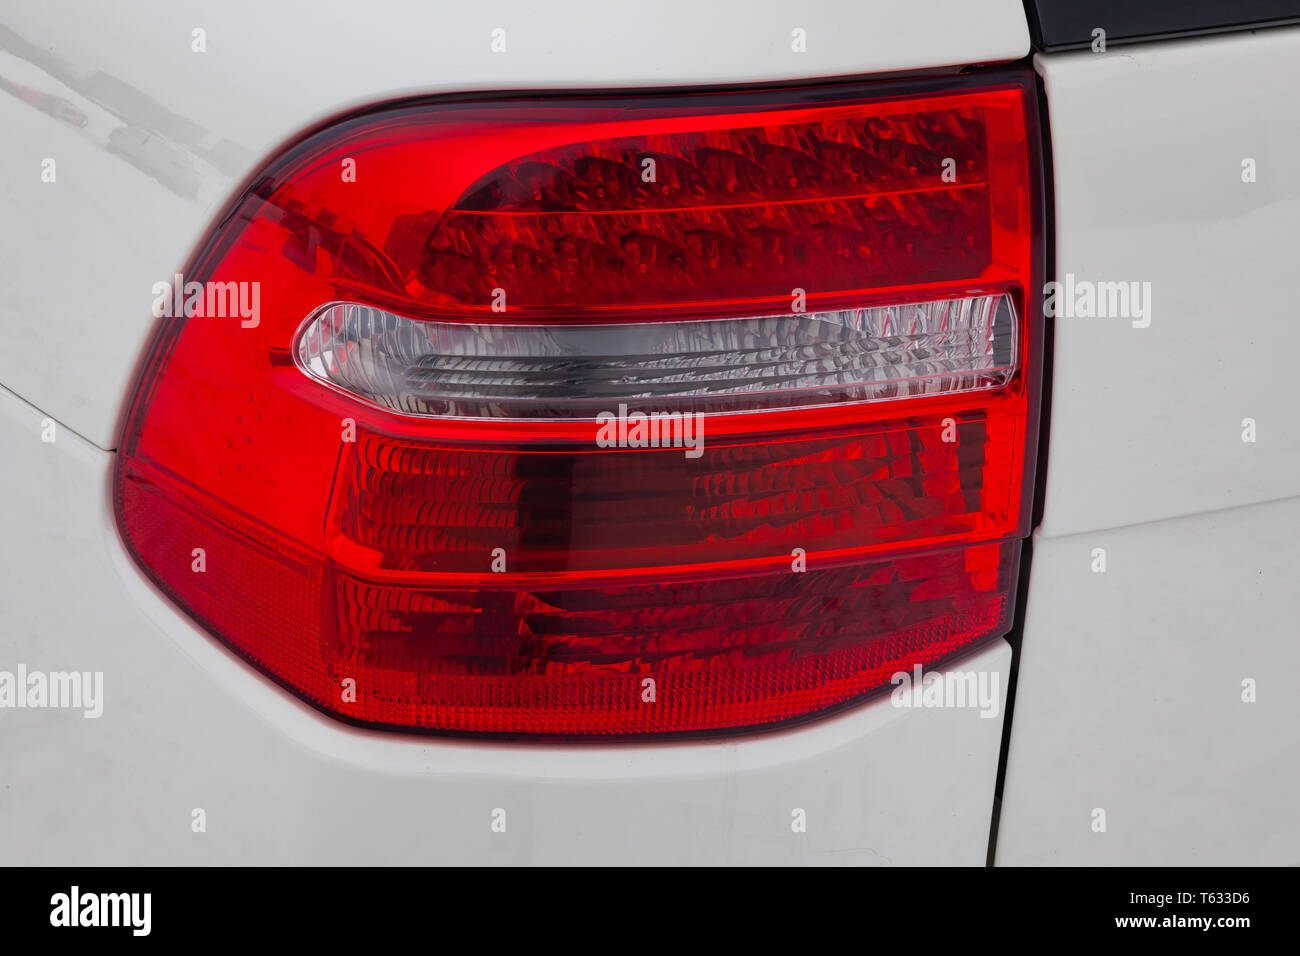 Close-up on the rear LED brake light of red color on a white car in the back of a suv after cleaning, polishing and detailing in the vehicle repair wo - Stock Image